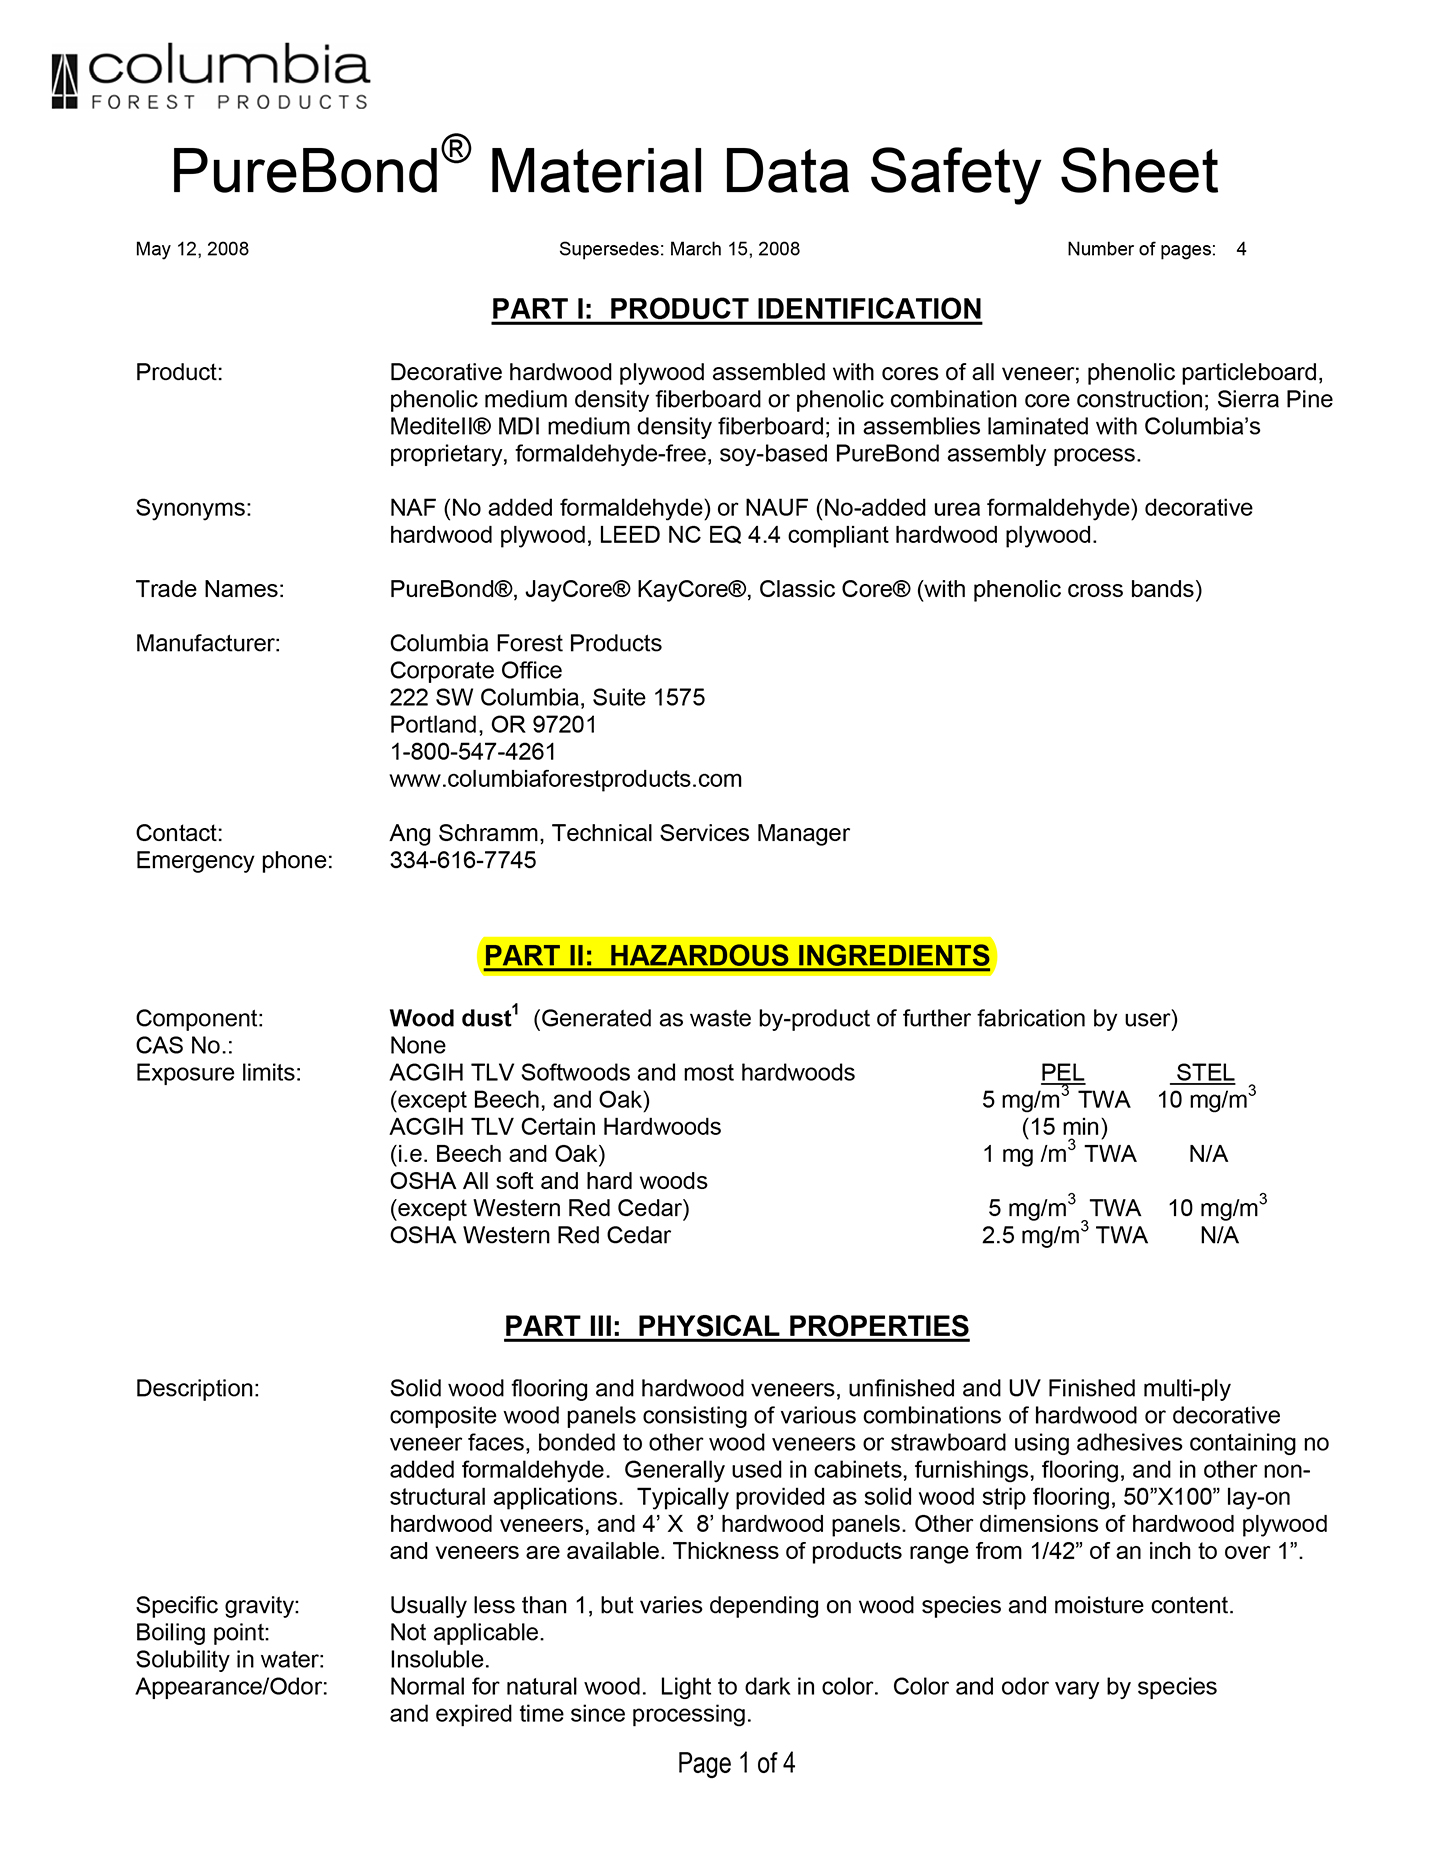 Sample MSDS for Purebond plywood